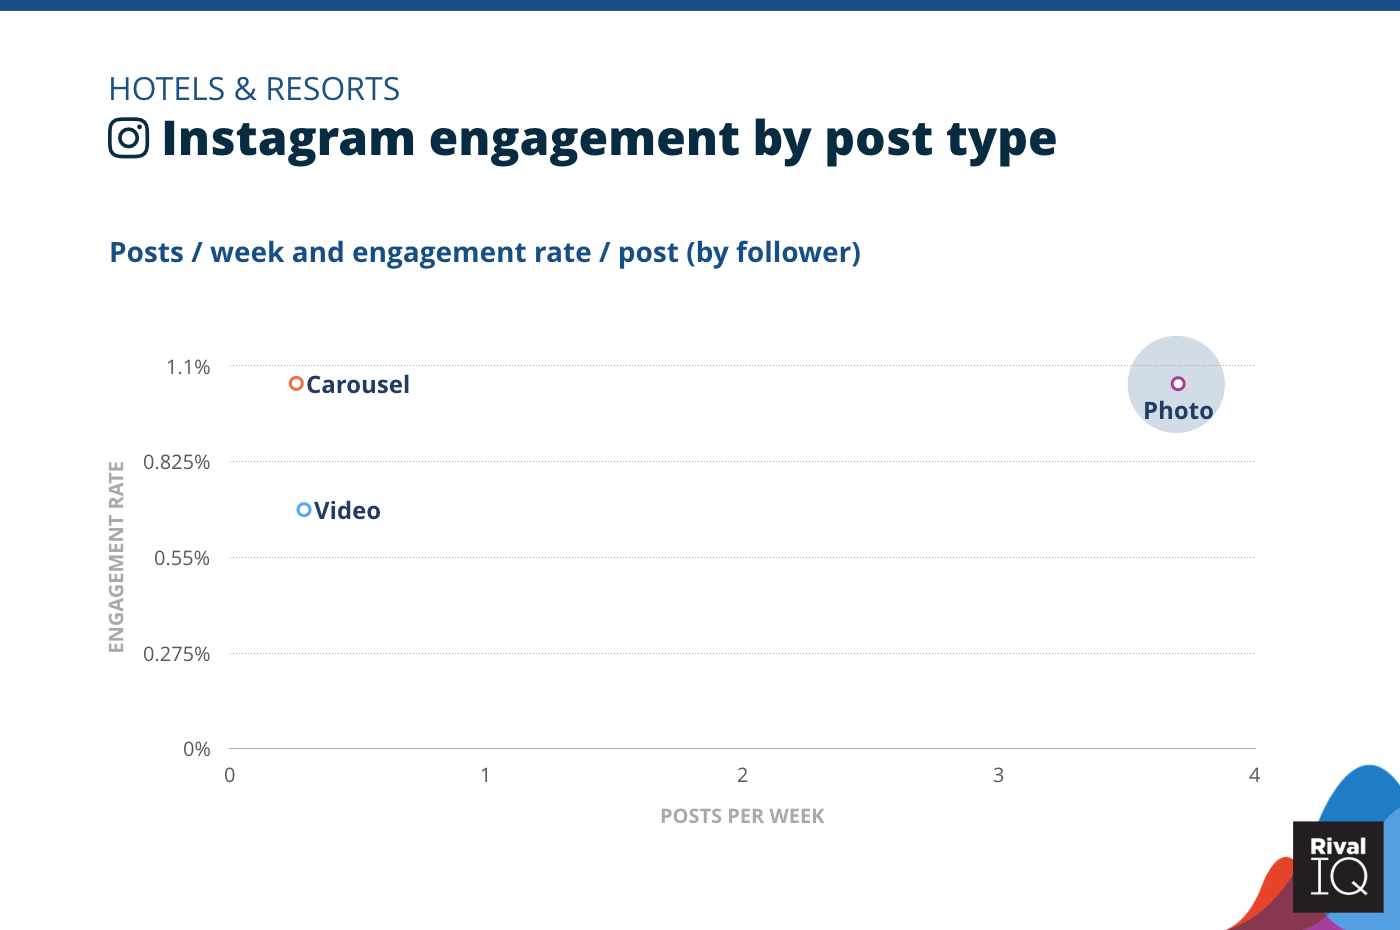 Chart of Instagram posts per week and engagement rate by post type, Hotels & Resorts